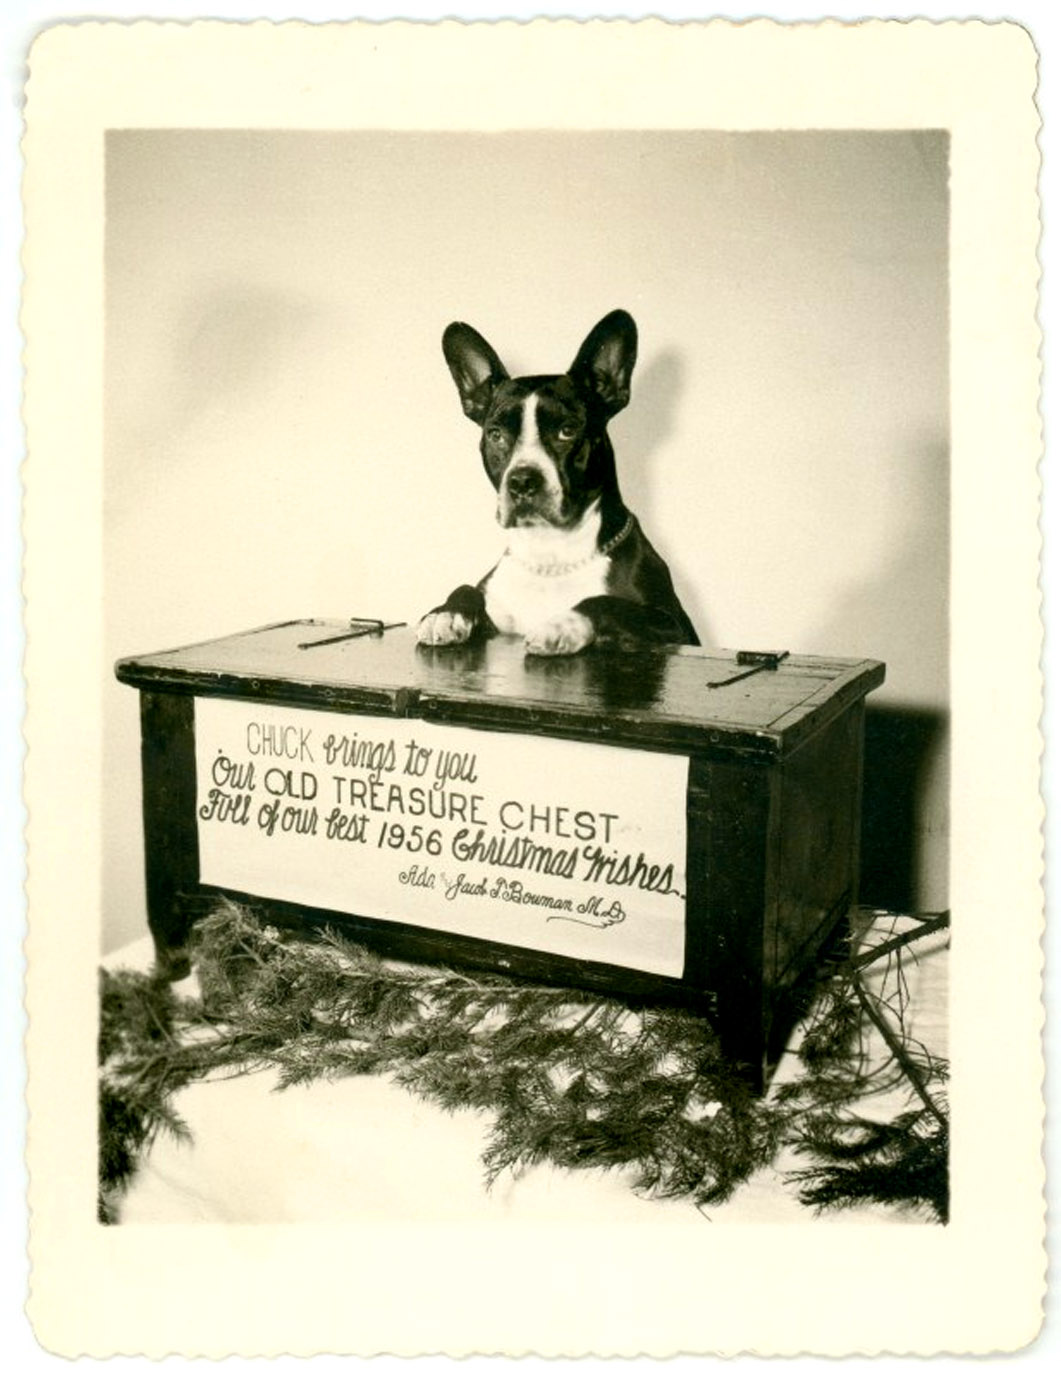 chuk the dogs treasure chest fun old xmas card